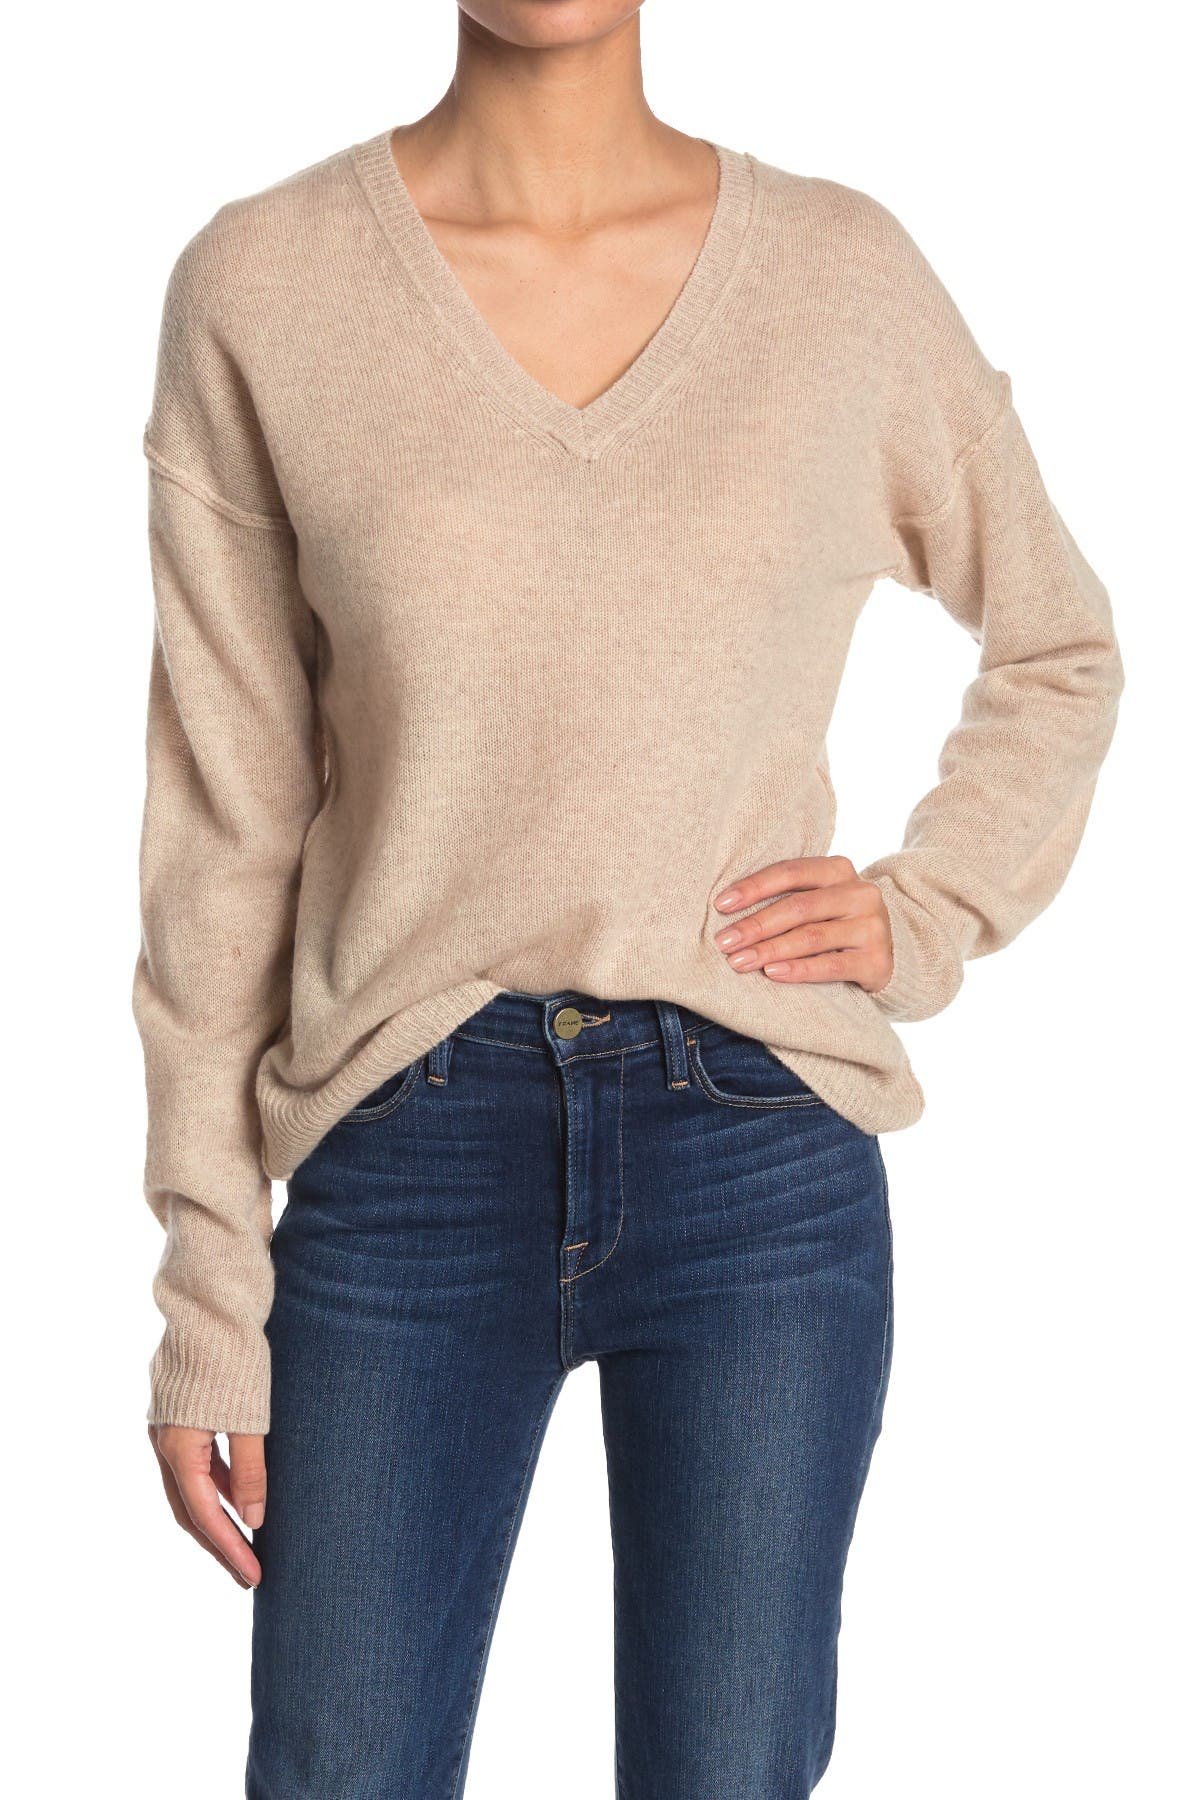 Image of 525 America Lightweight Cashmere V-Neck Sweater